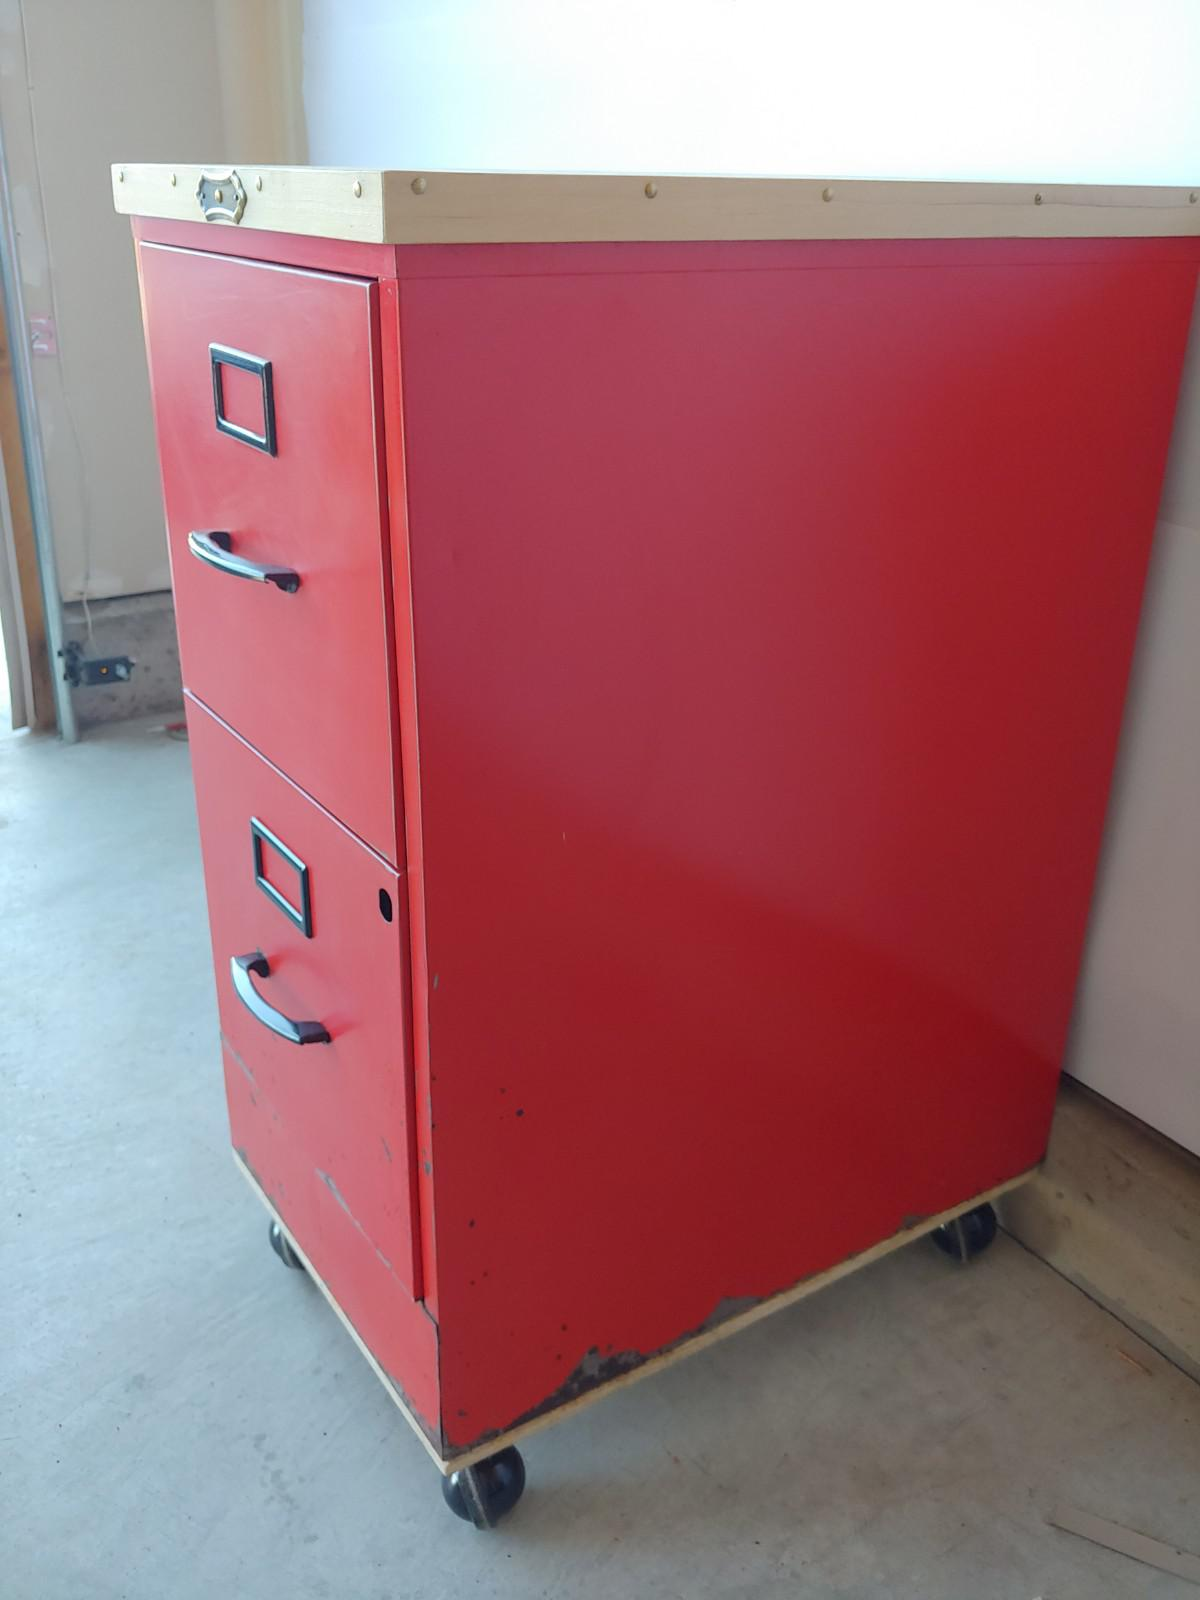 Superbe Vintage Super Roller Metal 2 Drawer Rolling Red File Cabinet   Image 4 Of 13